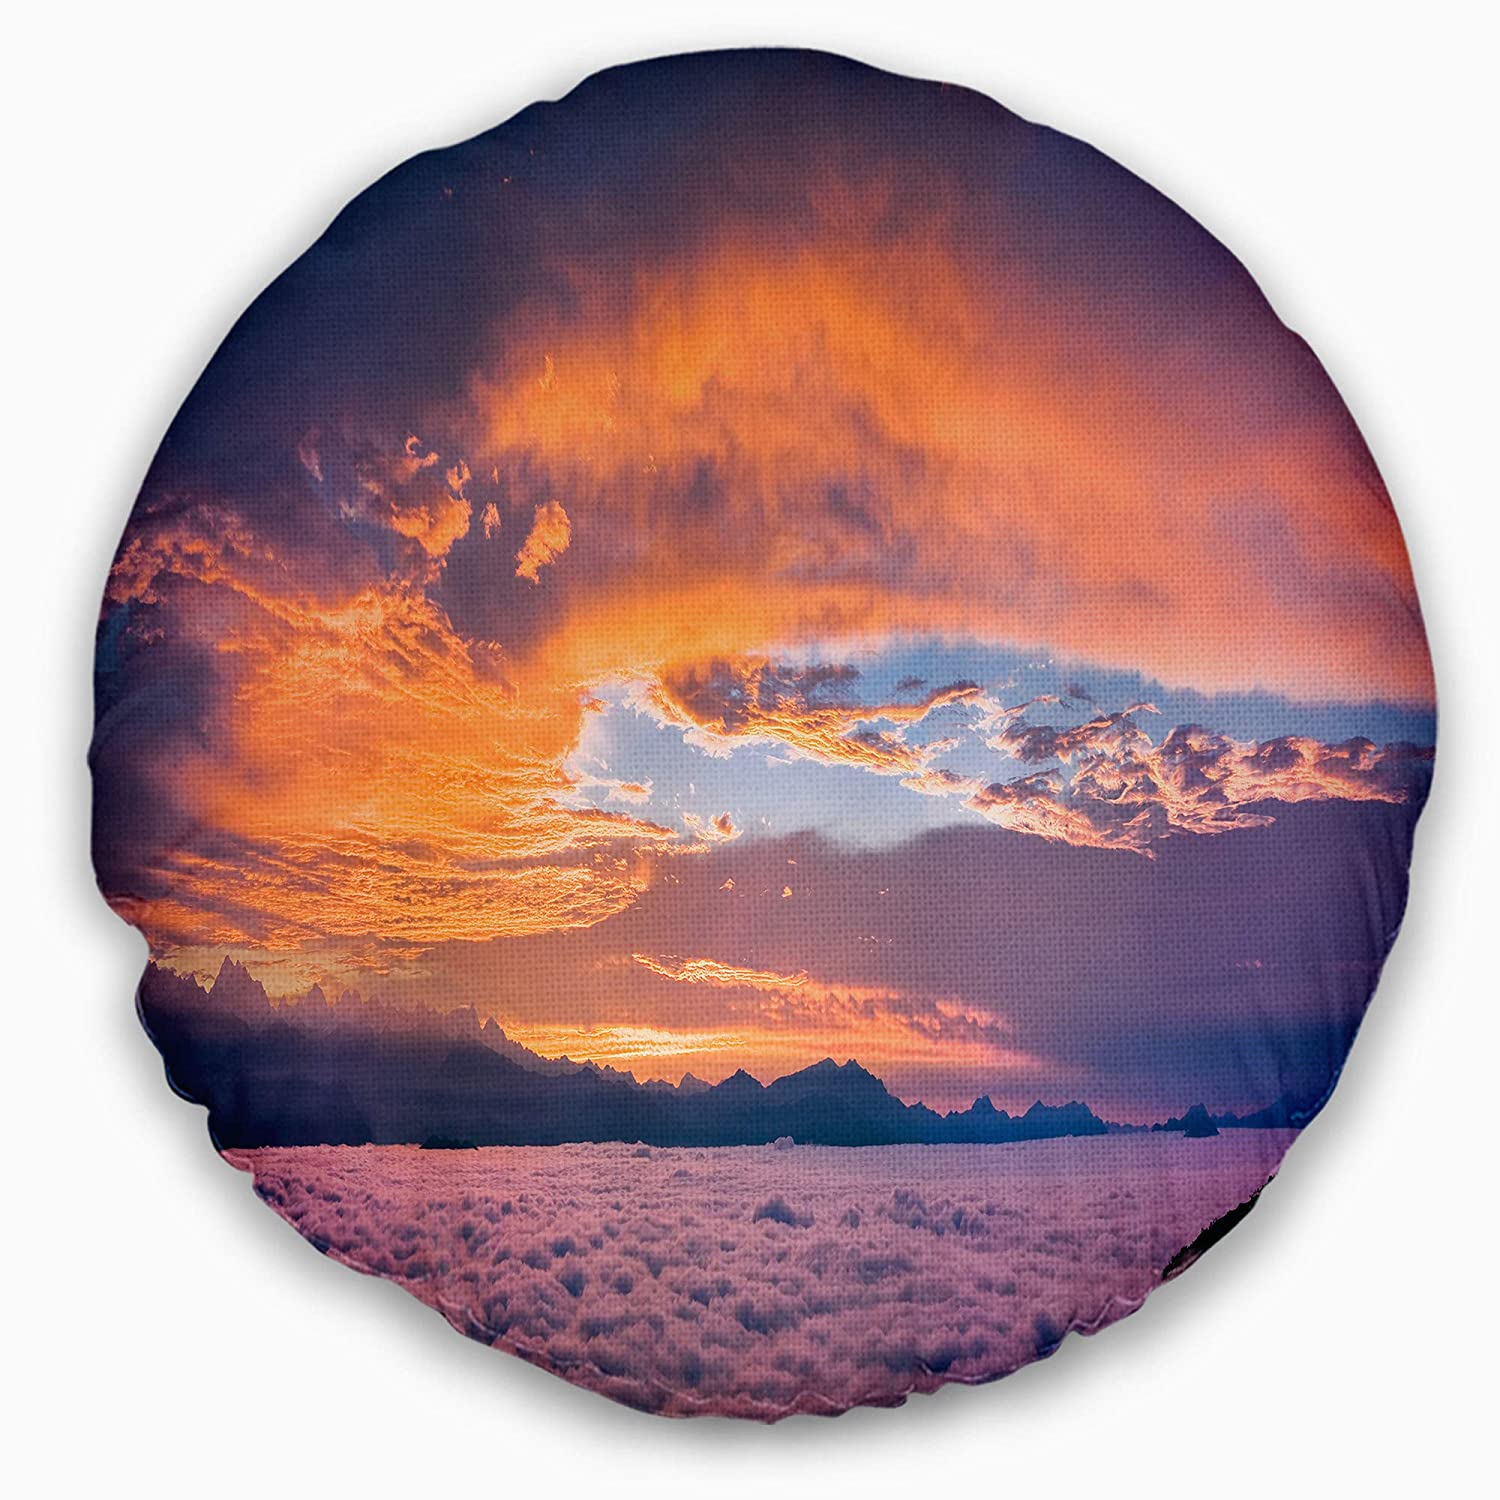 Designart CU10842-20-20-C Bright Panoramic Sunset Over Sea' Landscape Printed Round Cushion Cover for Living Room, Sofa Throw Pillow 20', Insert Side